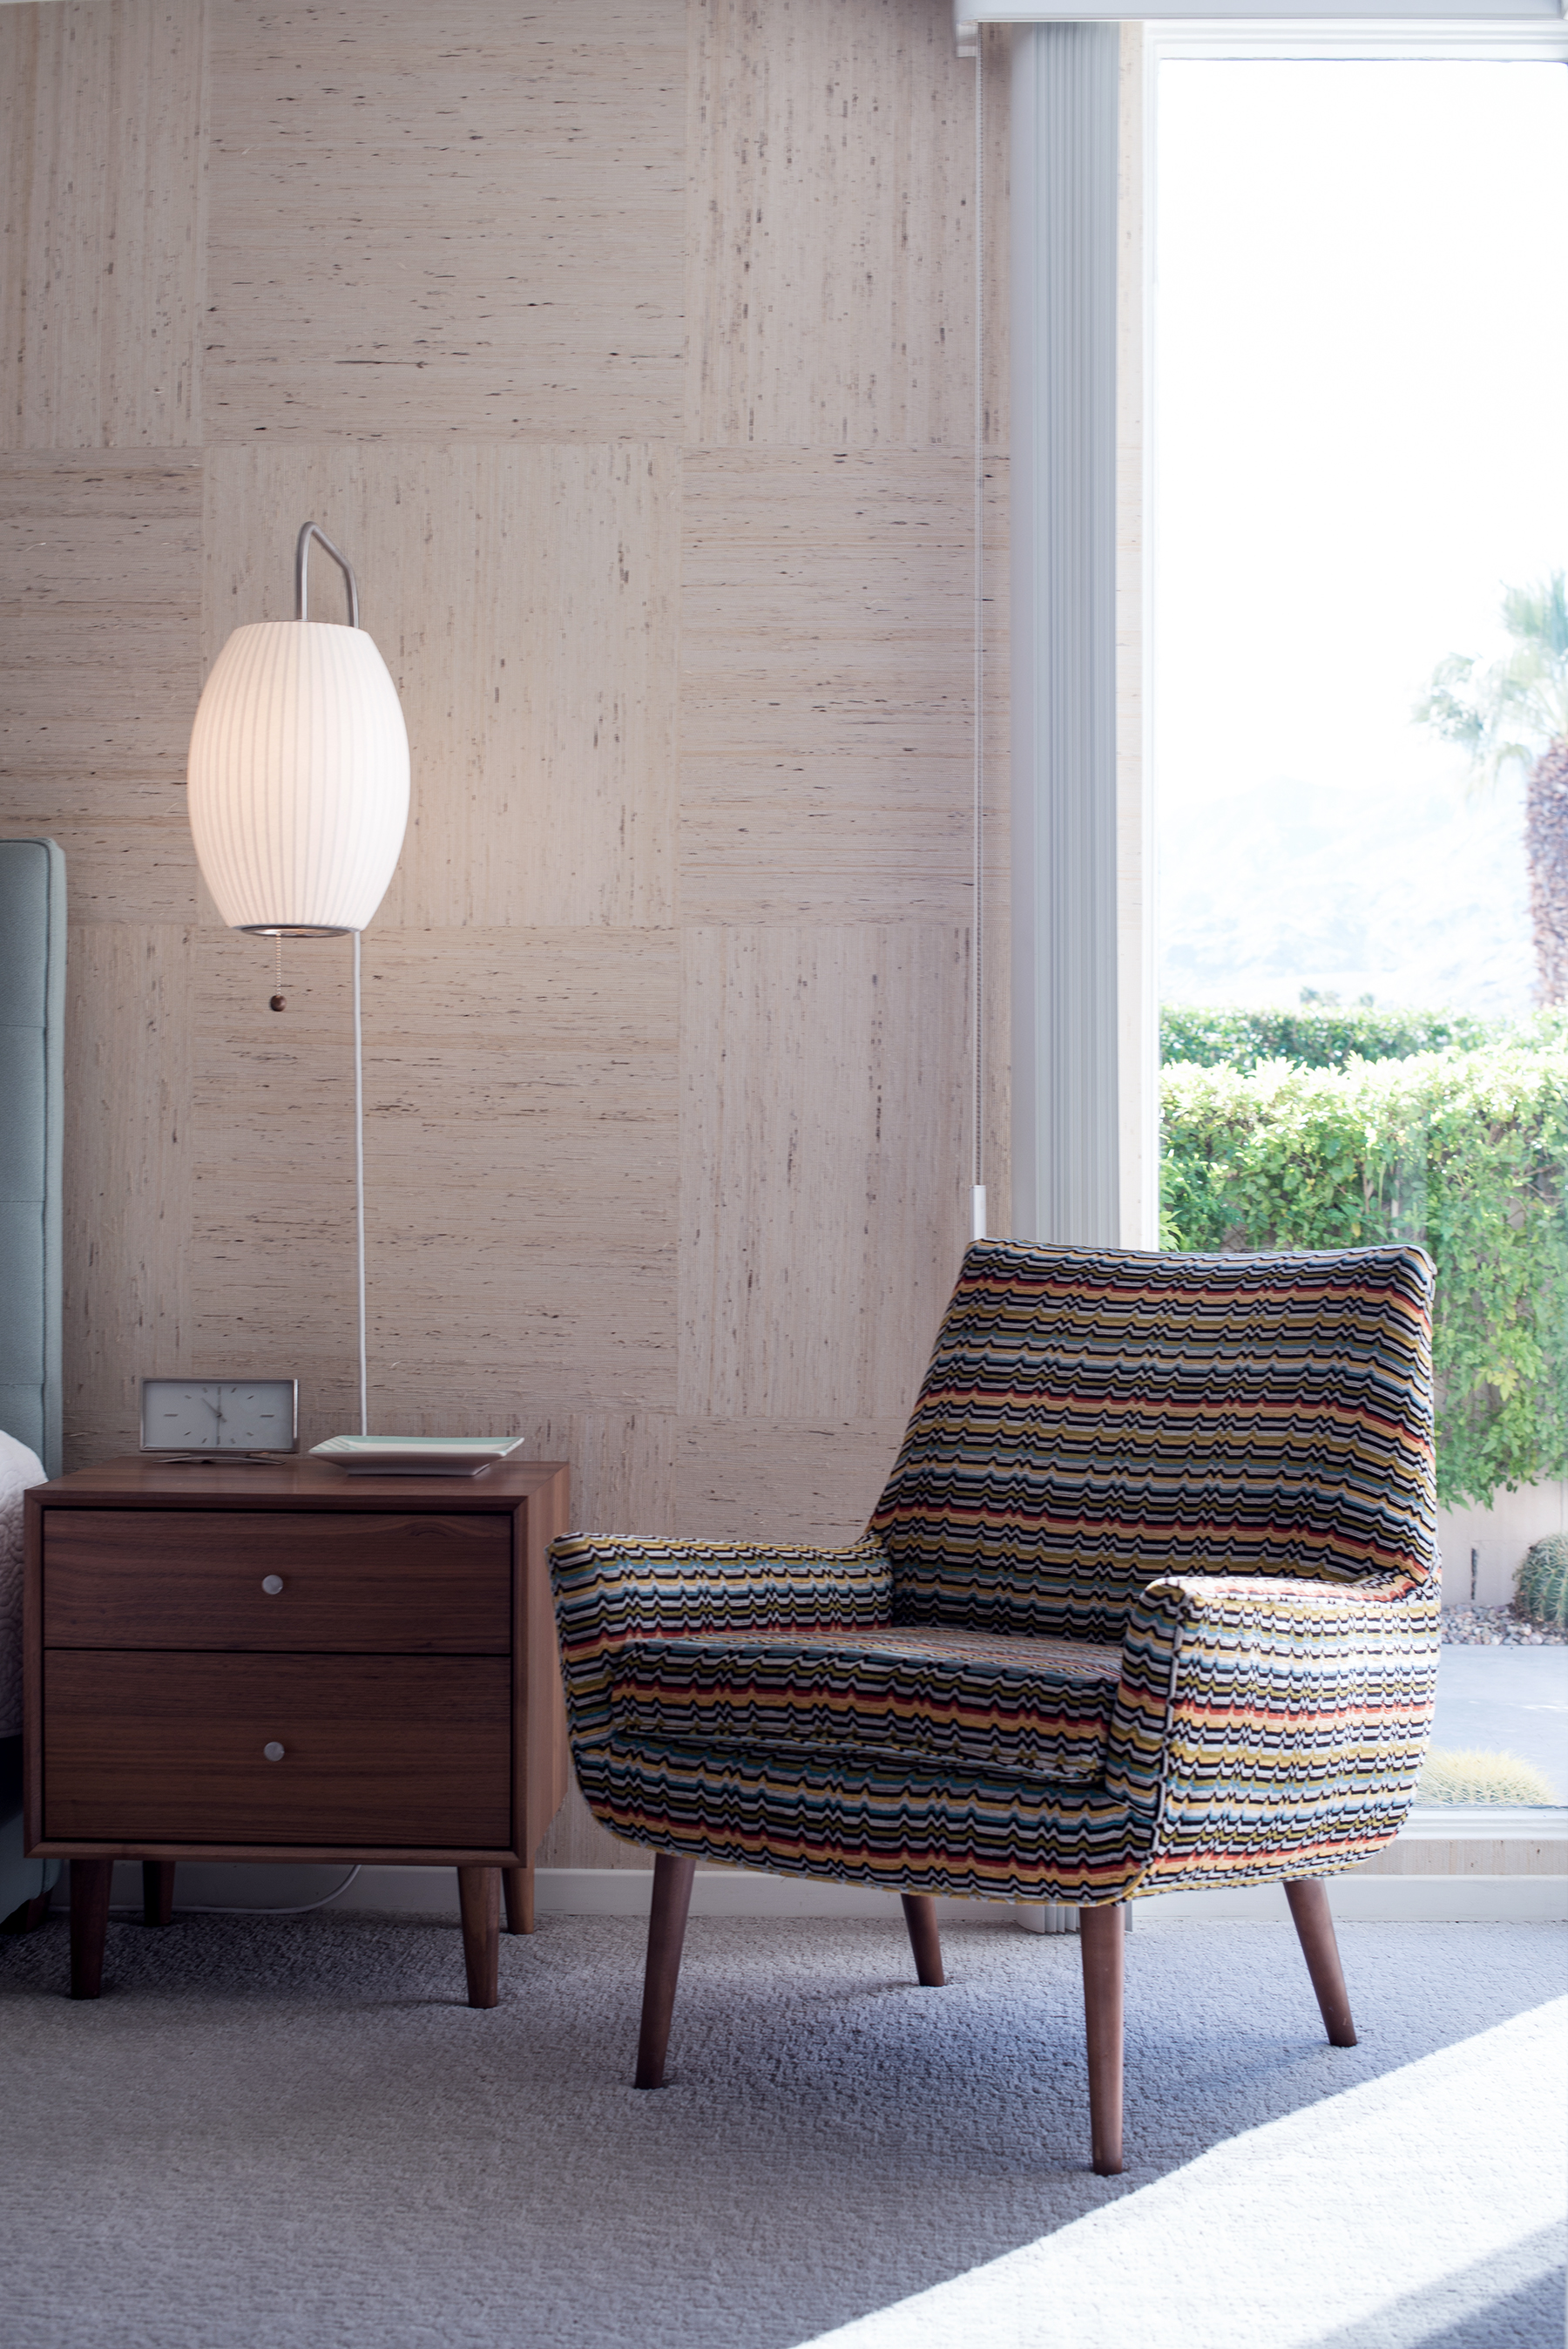 That table clock, lamp, and Missoni-inspired chair is giving me life, not to mention the wallpaper is fully on my wishlist.